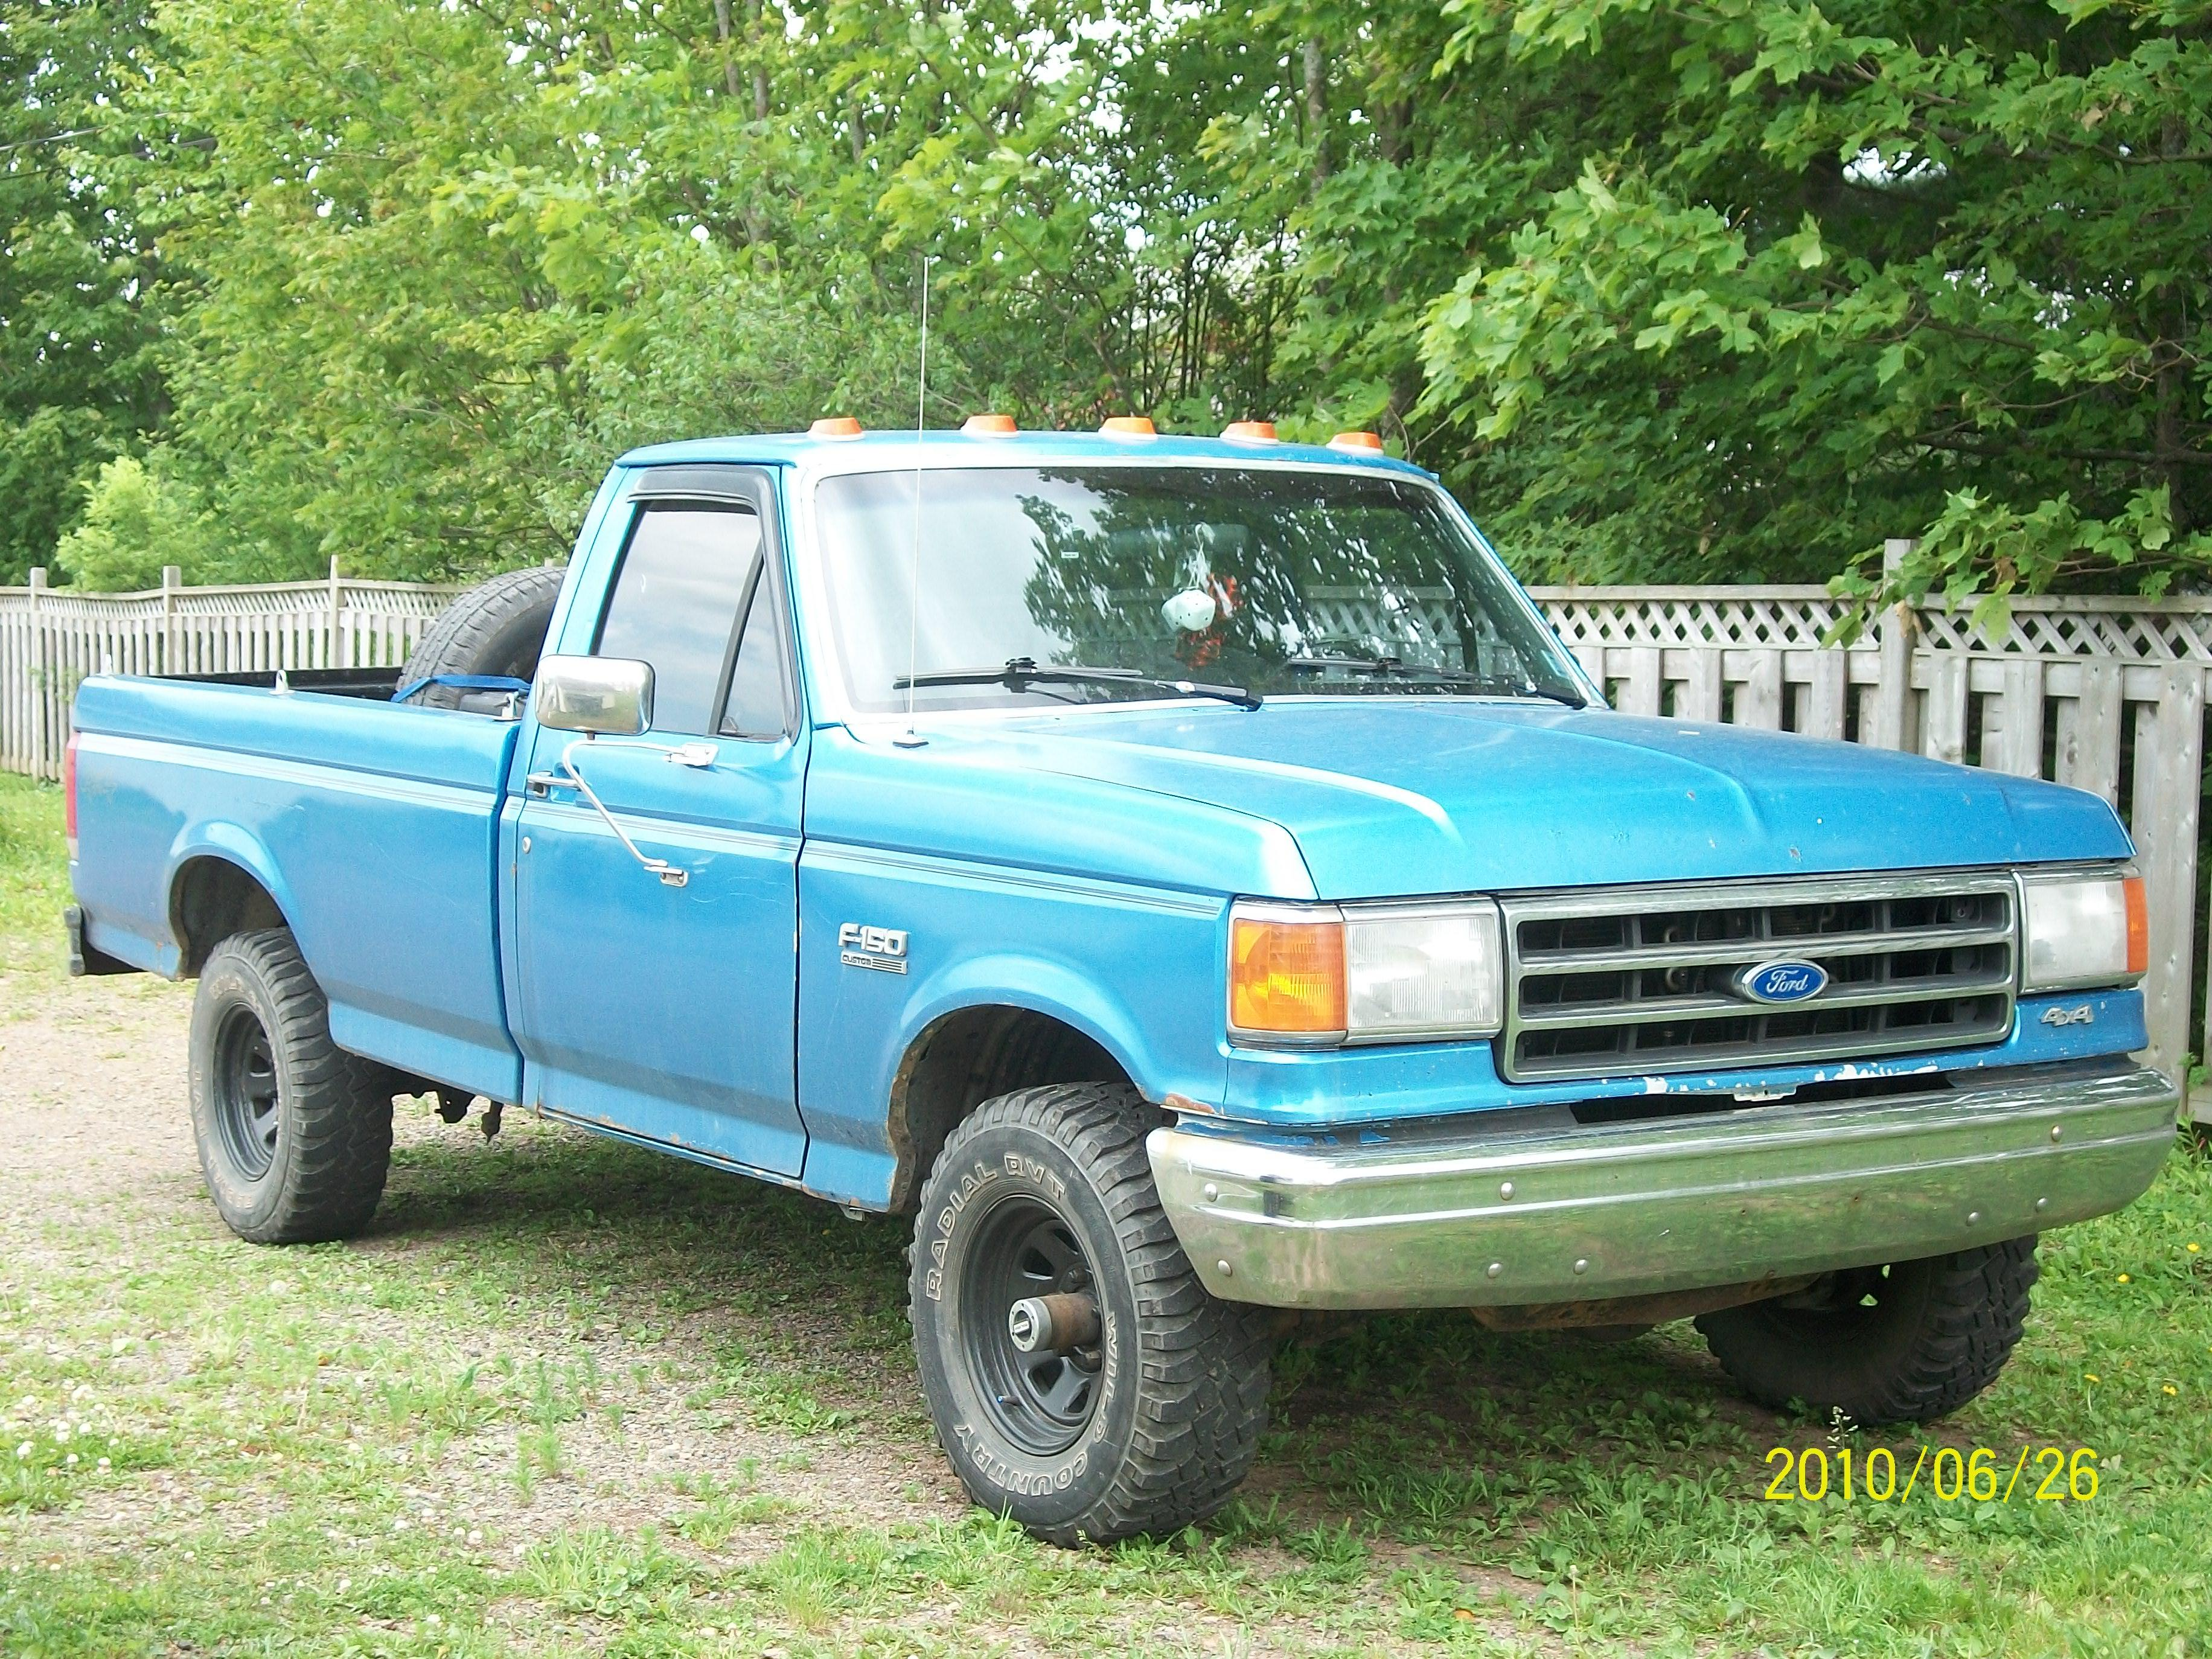 Blueoxf150 1990 ford f150 regular cab 38678570001 original